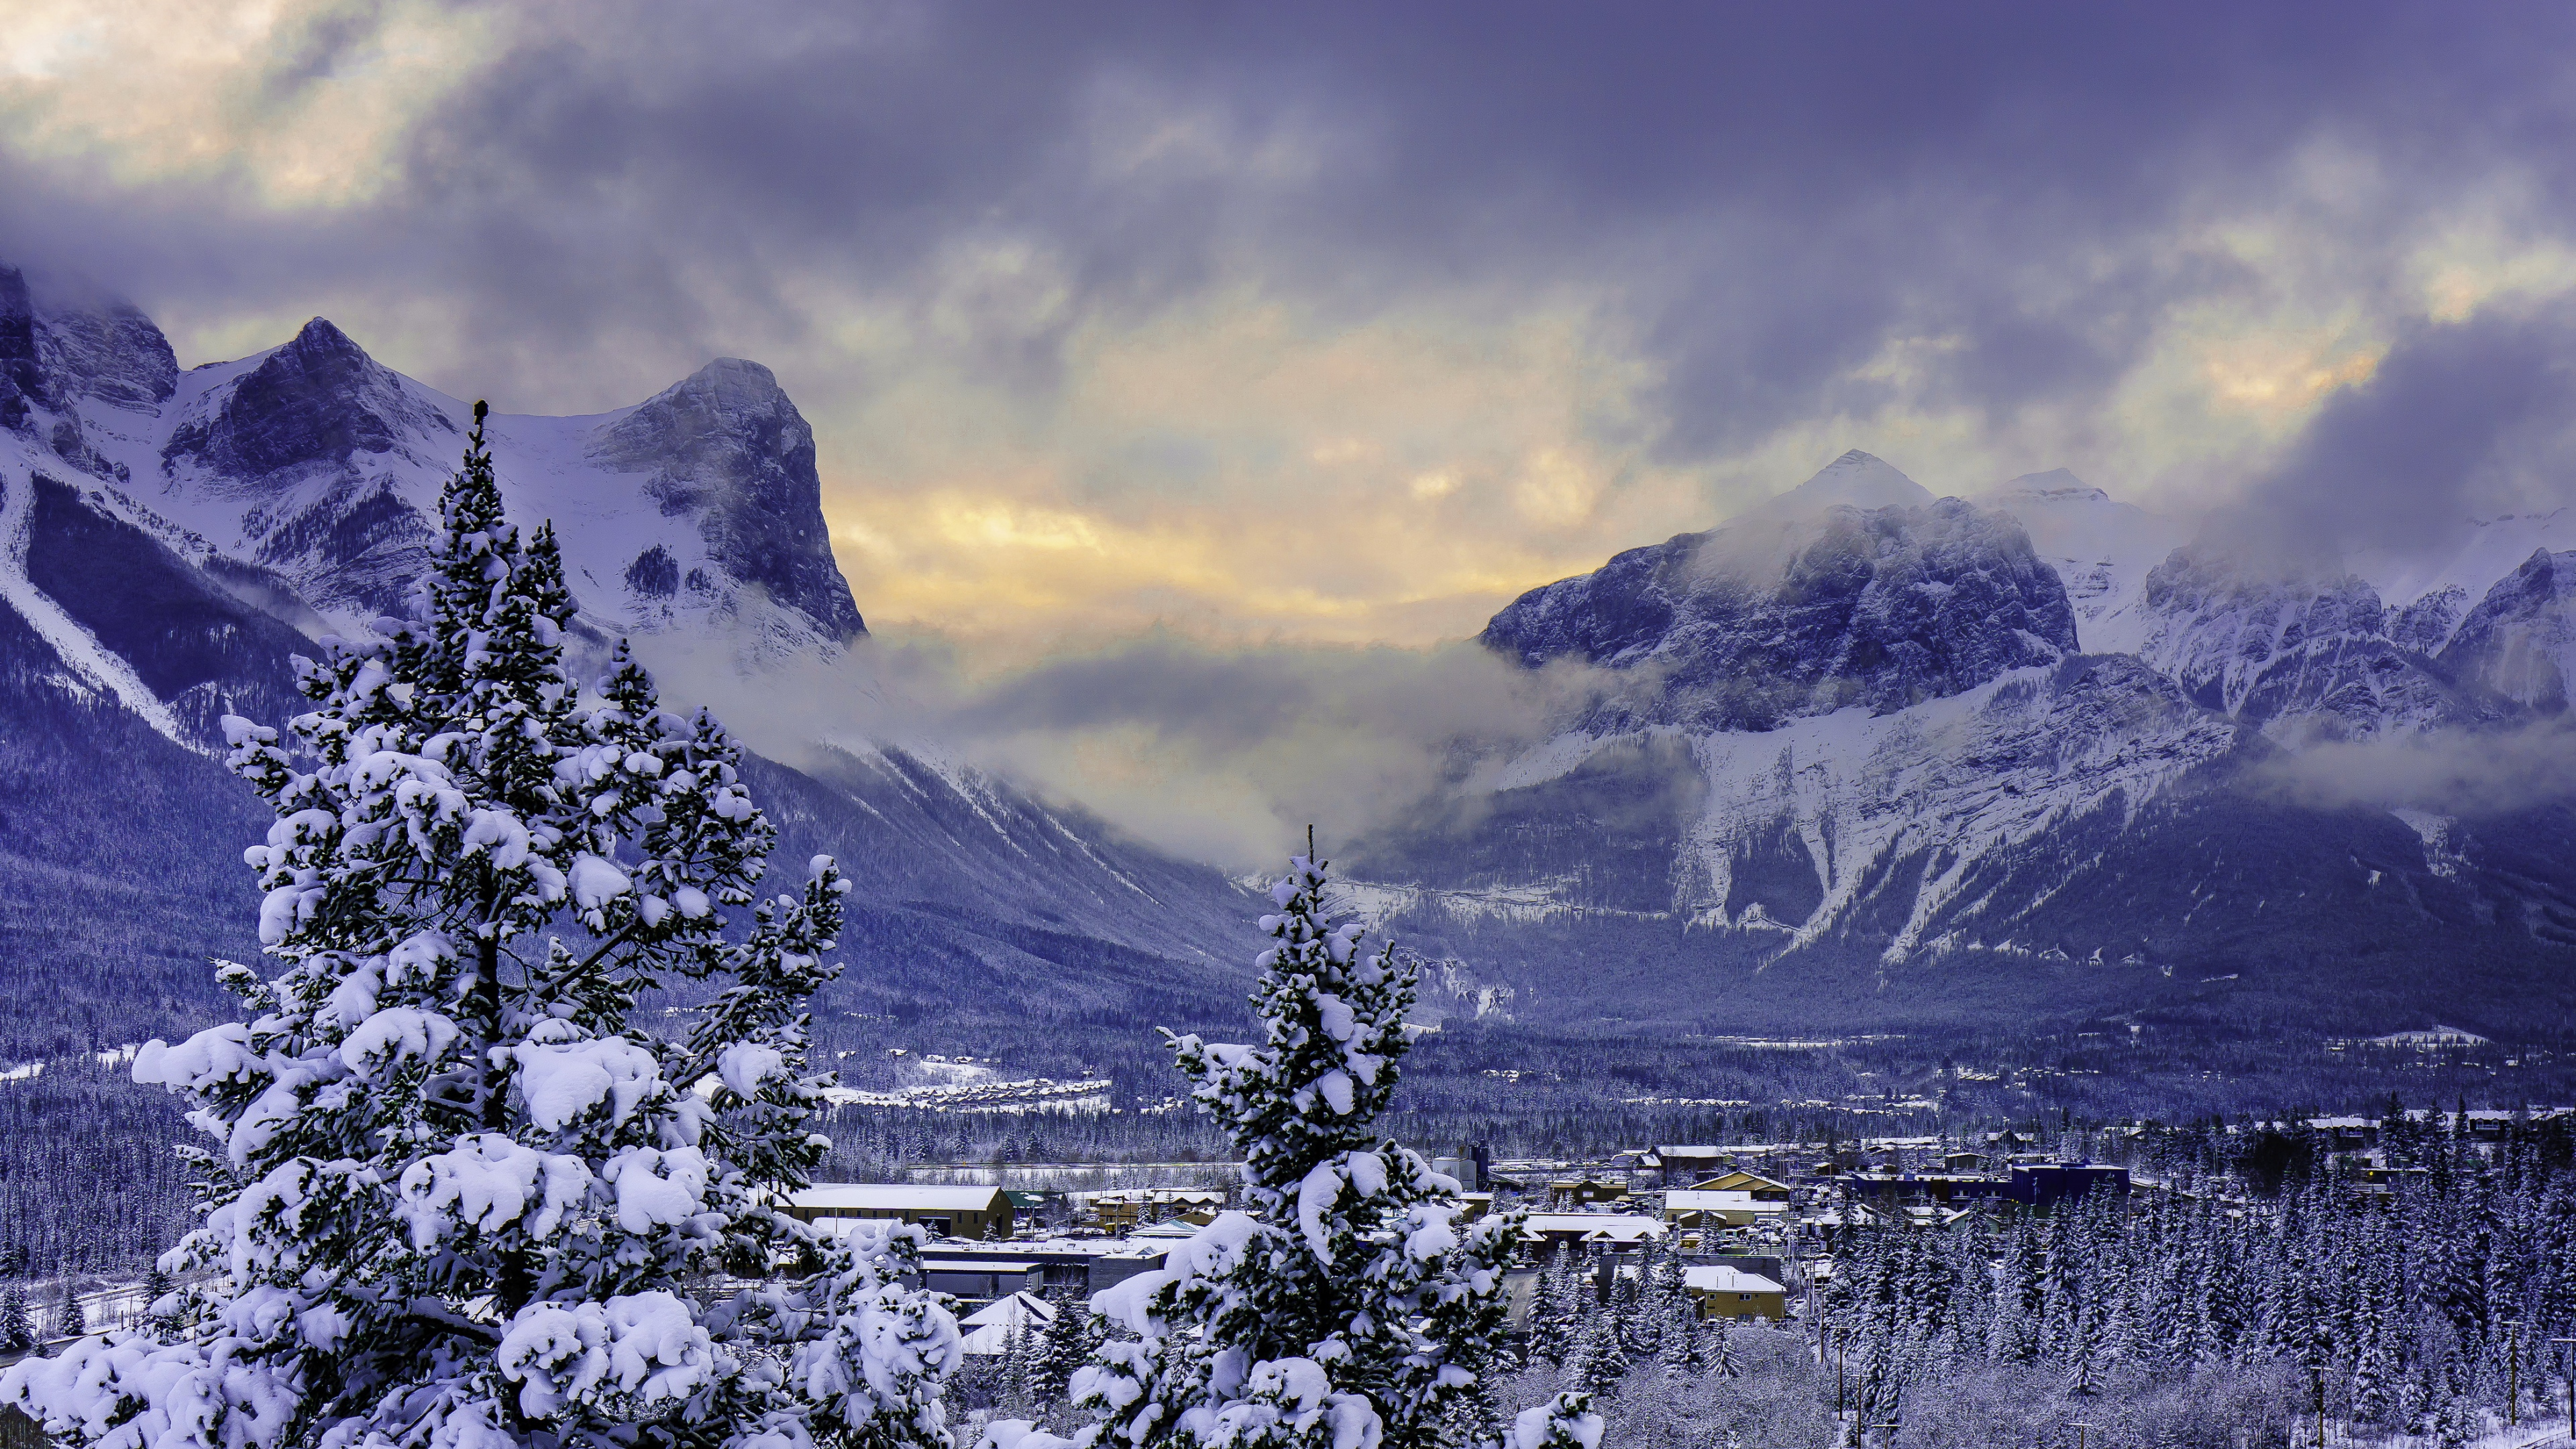 Winter Mountains Background